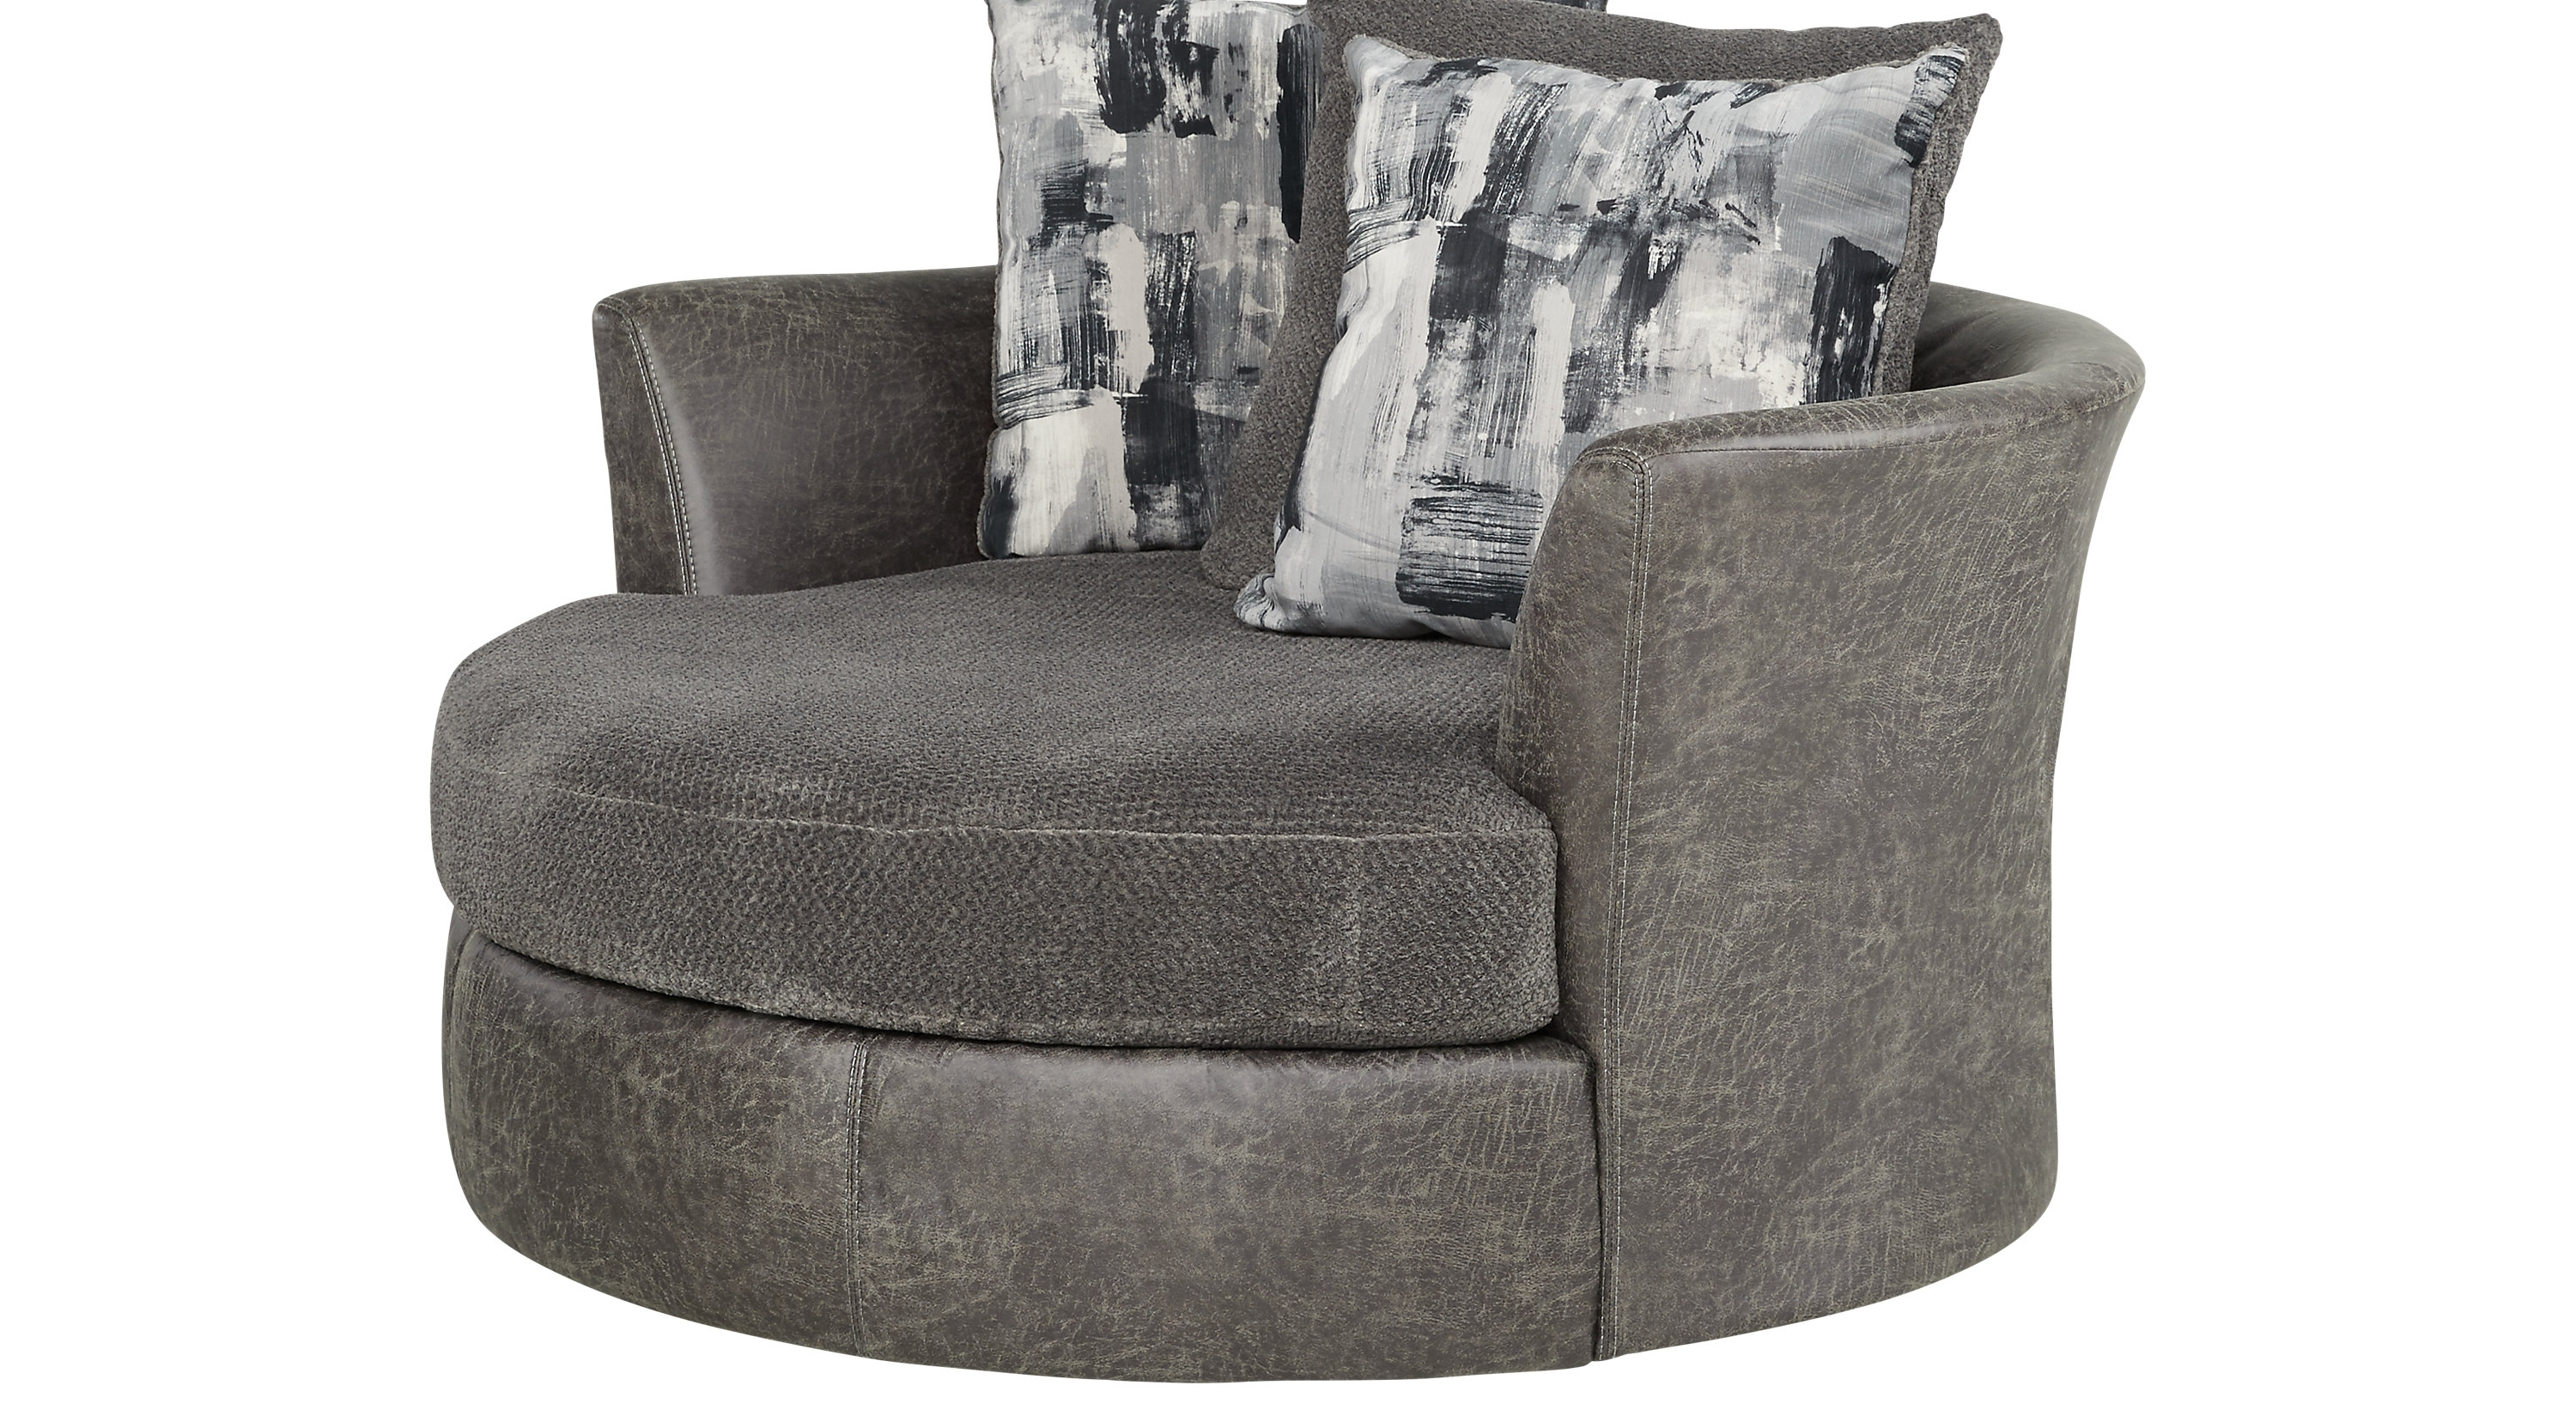 Round Sofa Chair, Round Couch Chair Intended For Famous Sofas With Swivel Chair (View 9 of 20)